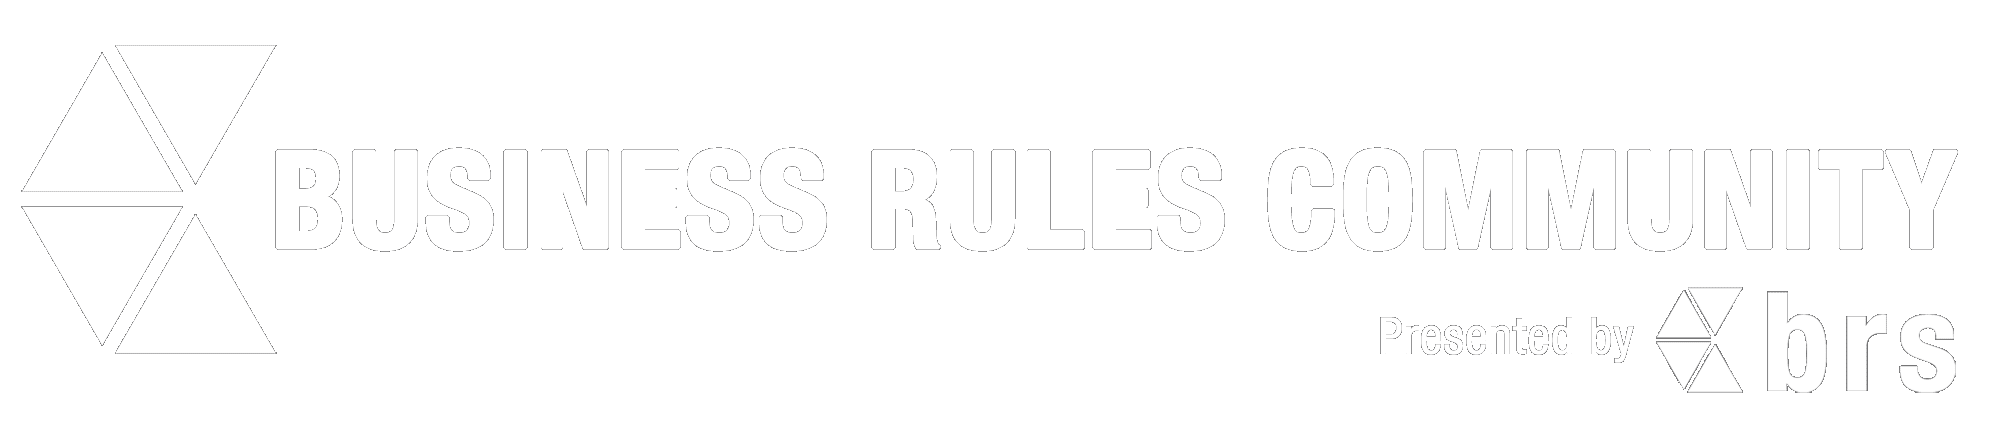 Business Rules Community (BRC)